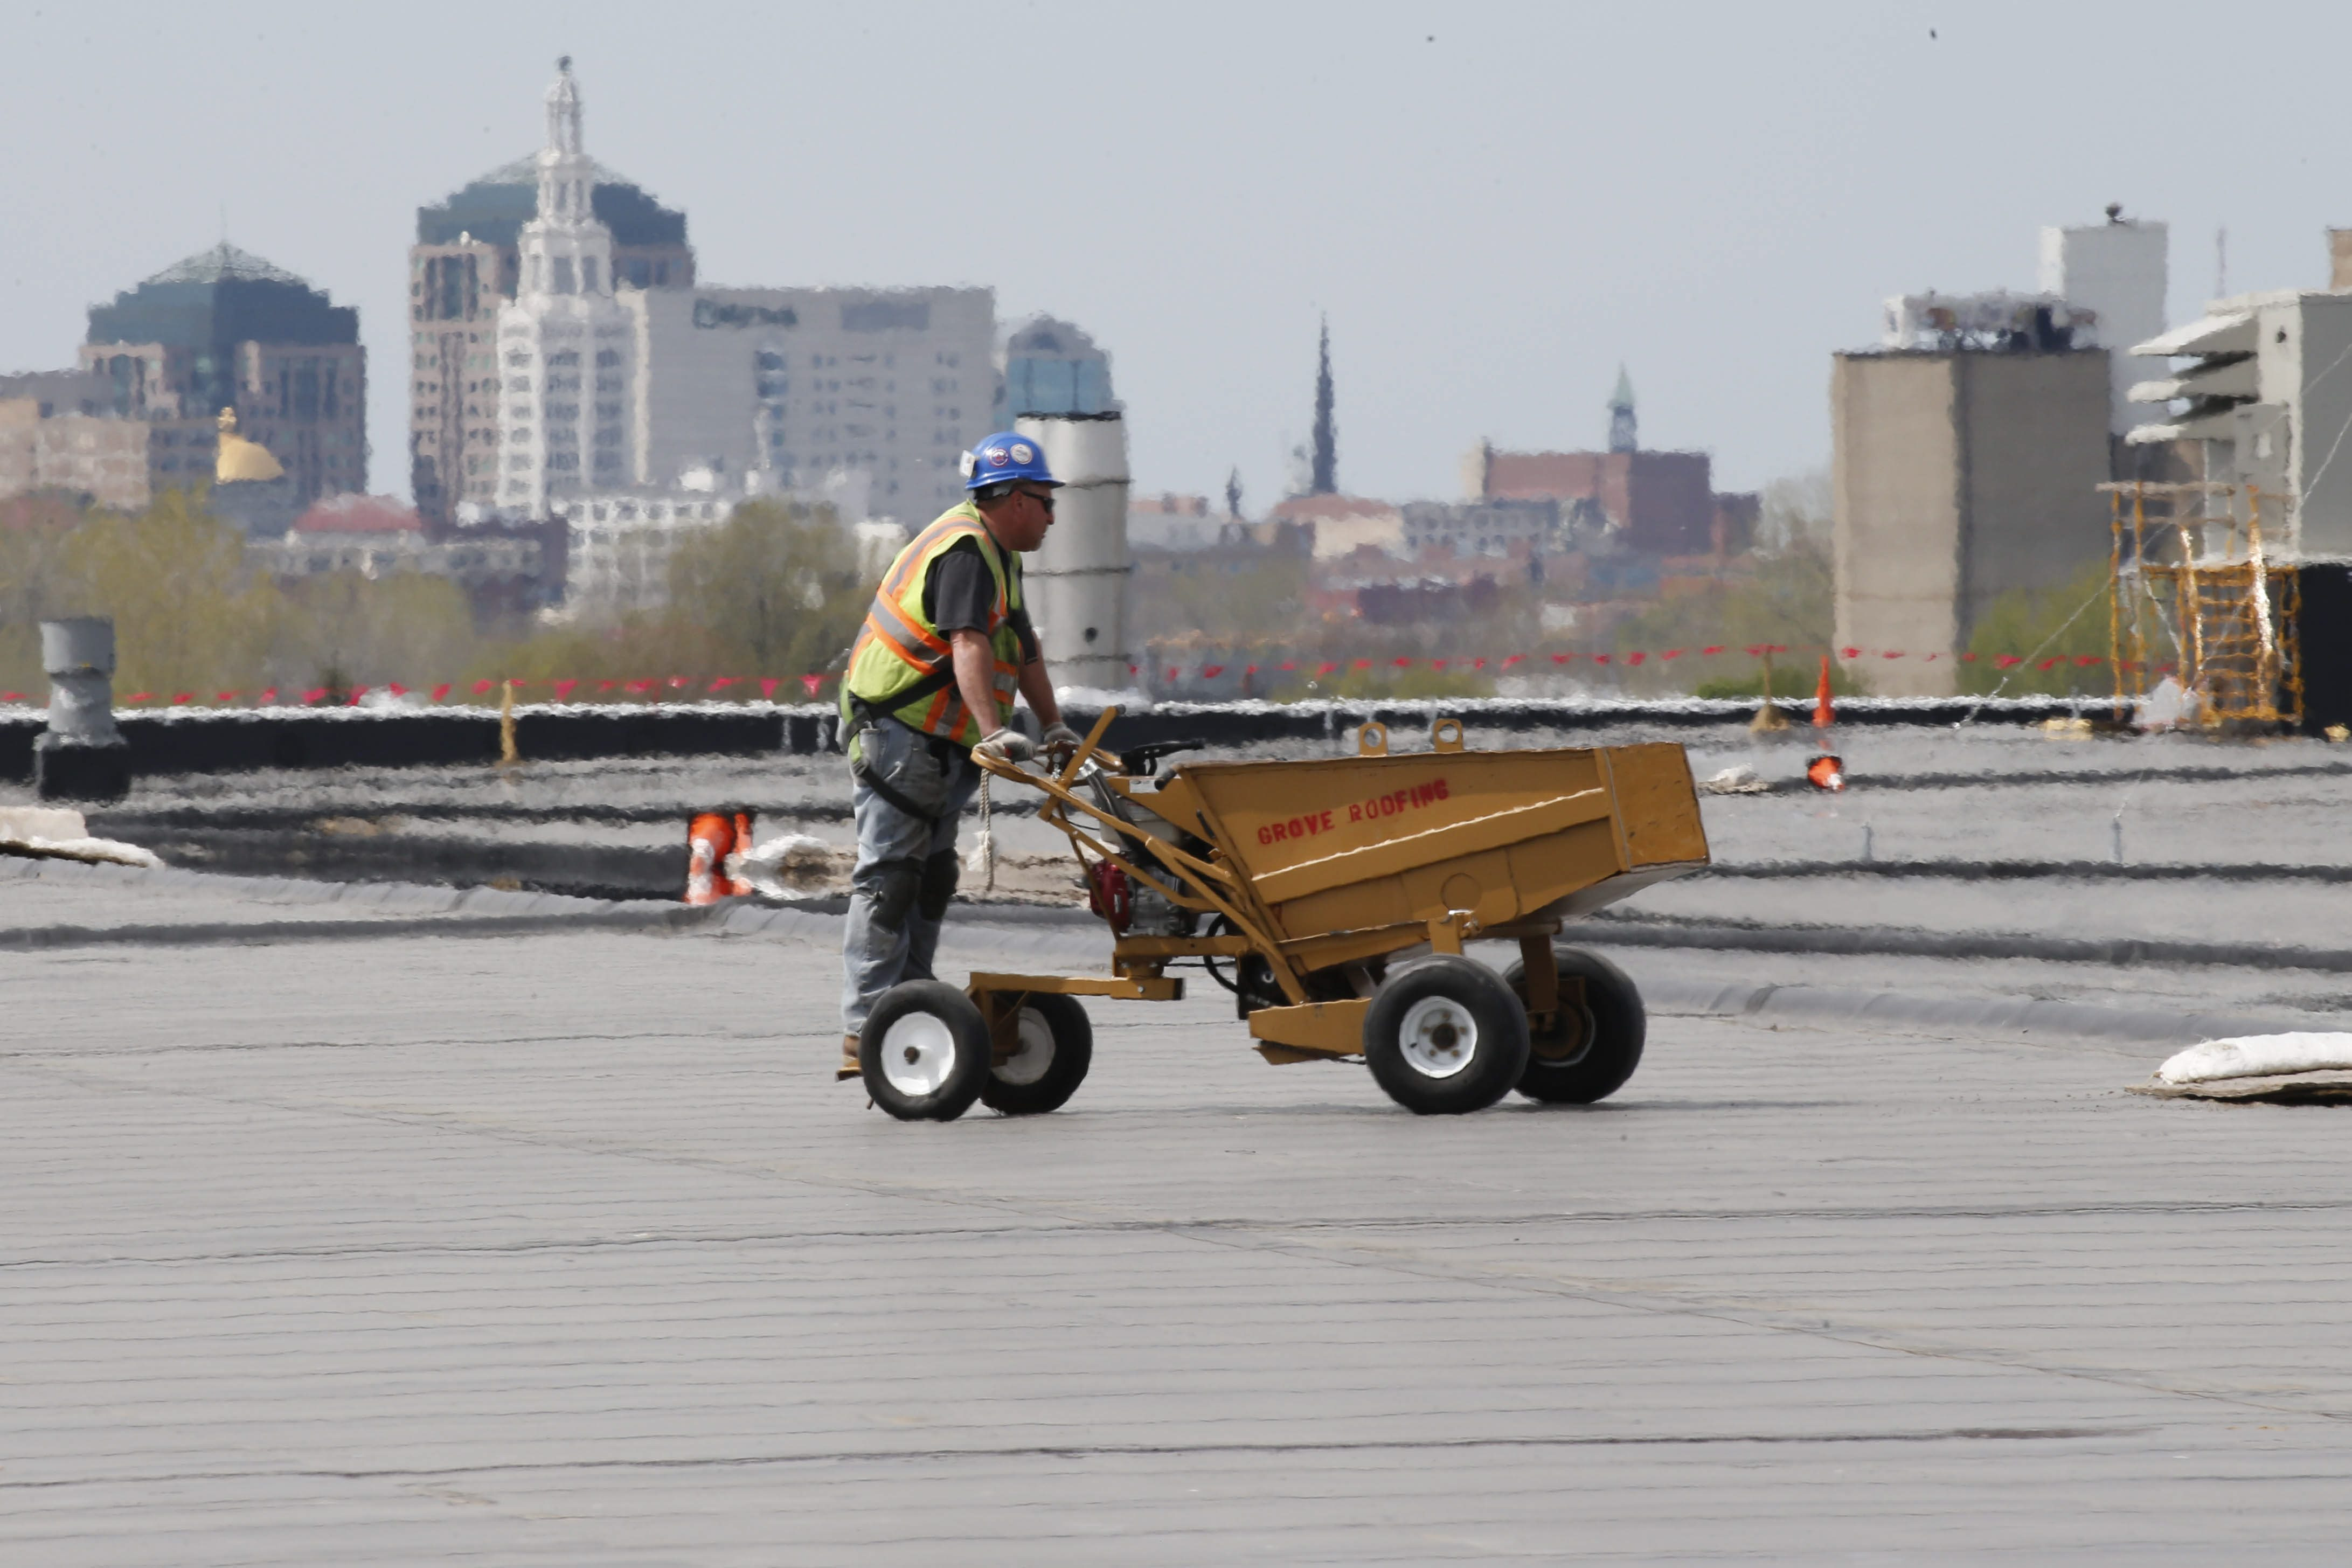 A worker drives equipment across the roof of the massive SolarCity manufacturing facility at RiverBend in May. The factory was constructed as part of the state's Buffalo Billion economic development program. (Derek Gee/Buffalo News file photo)